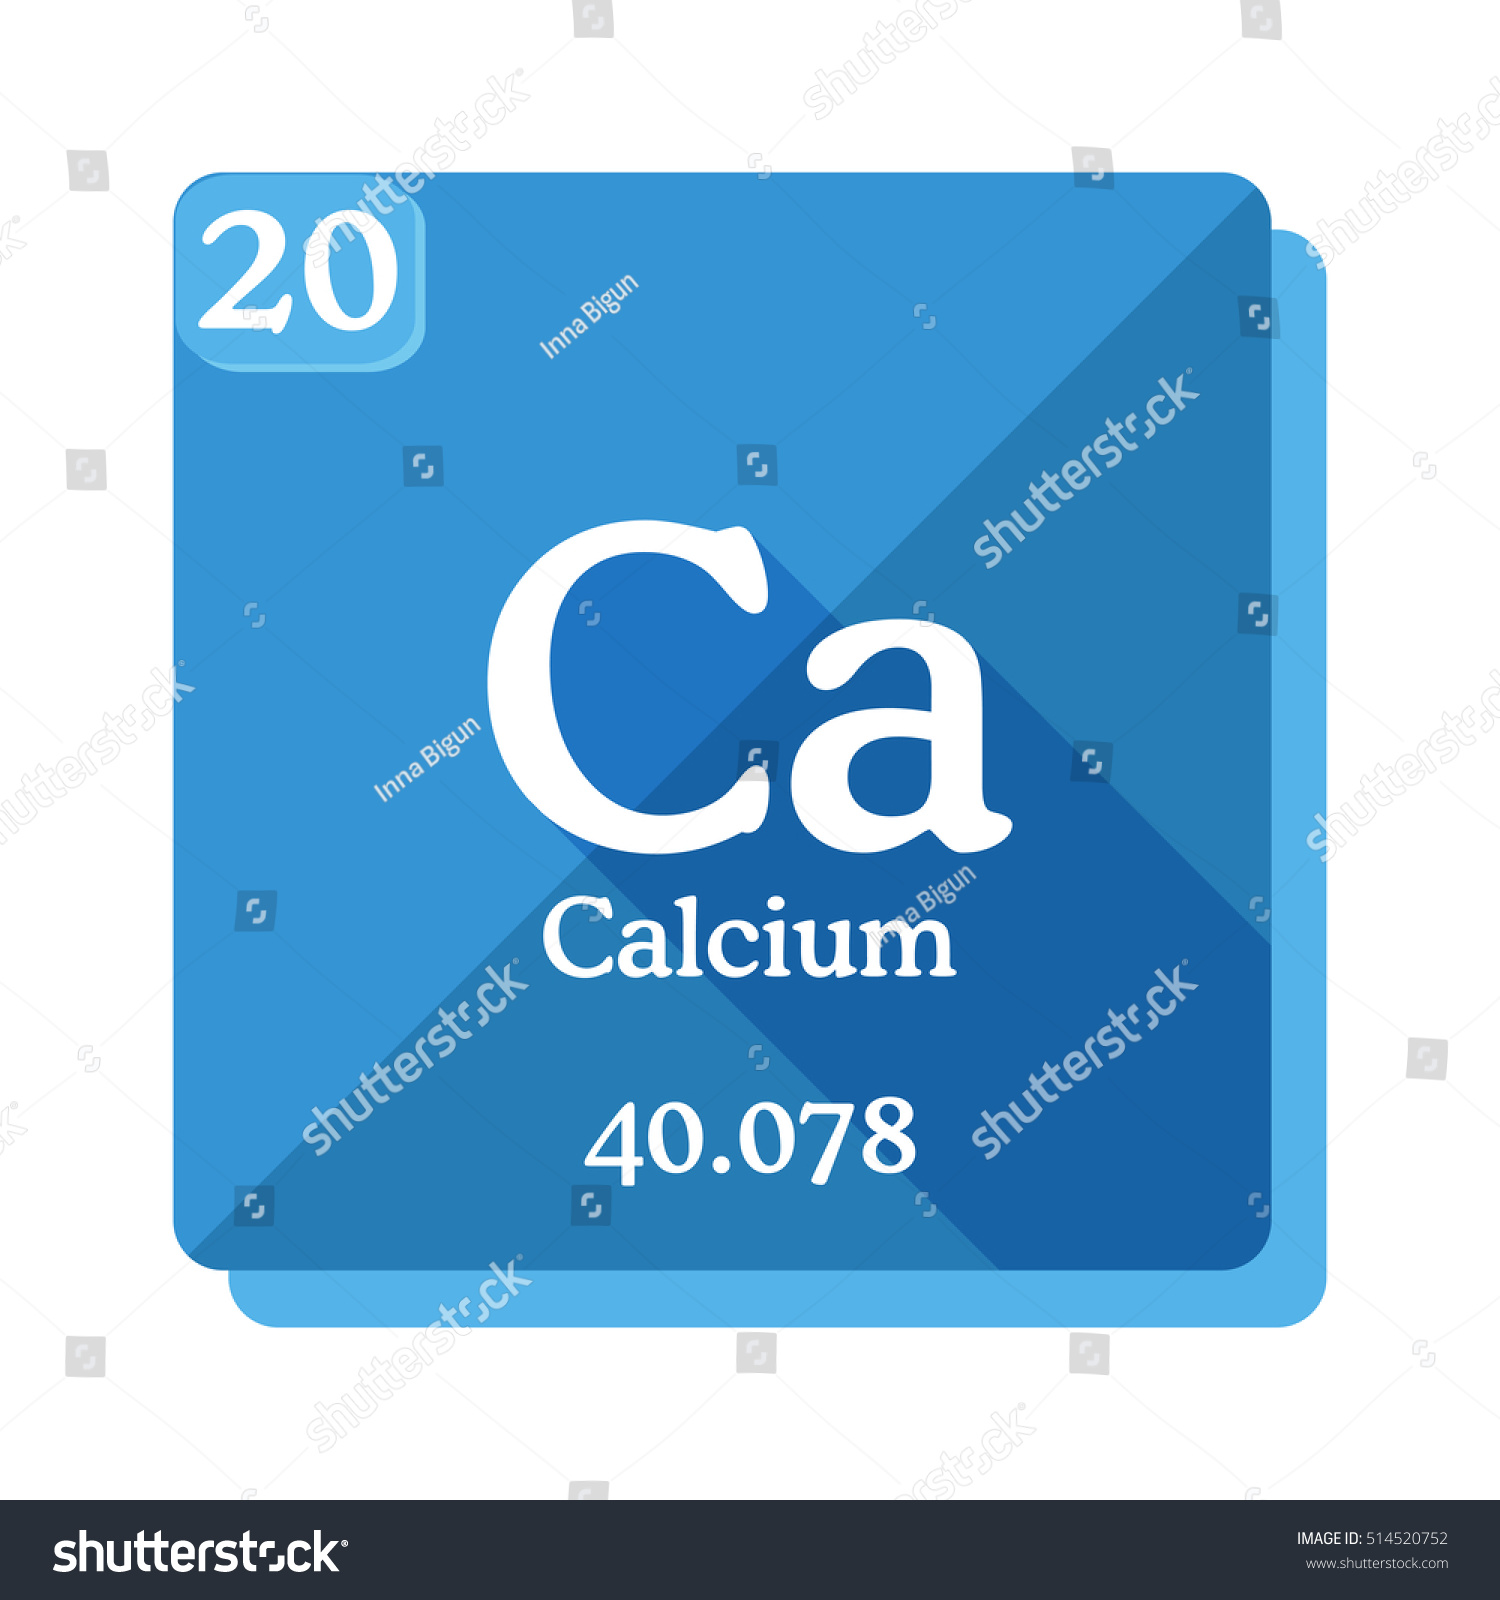 Calcium ca element periodic table flat stock vector 514520752 calcium ca element of the periodic table flat icon with long shadow urtaz Gallery